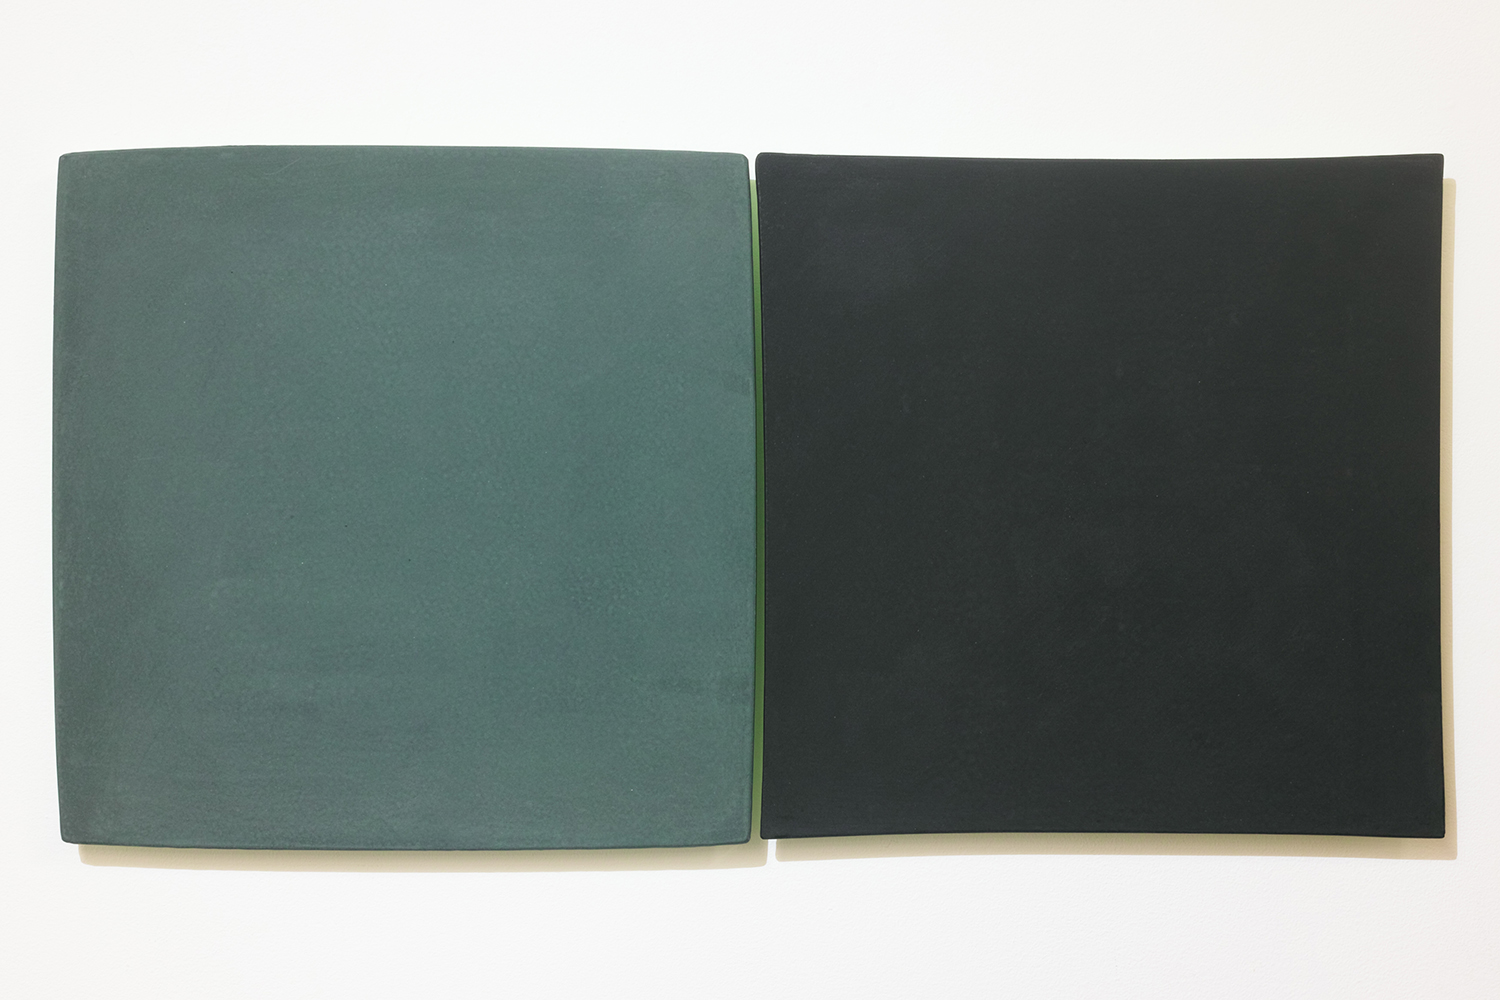 線を見つける・A/Find the line A|Blackboard paint (green / black)  on the panel,  luminescent pigment|300 x 300 x 20, 290 x 290 x 20 mm|2020<br>Sold